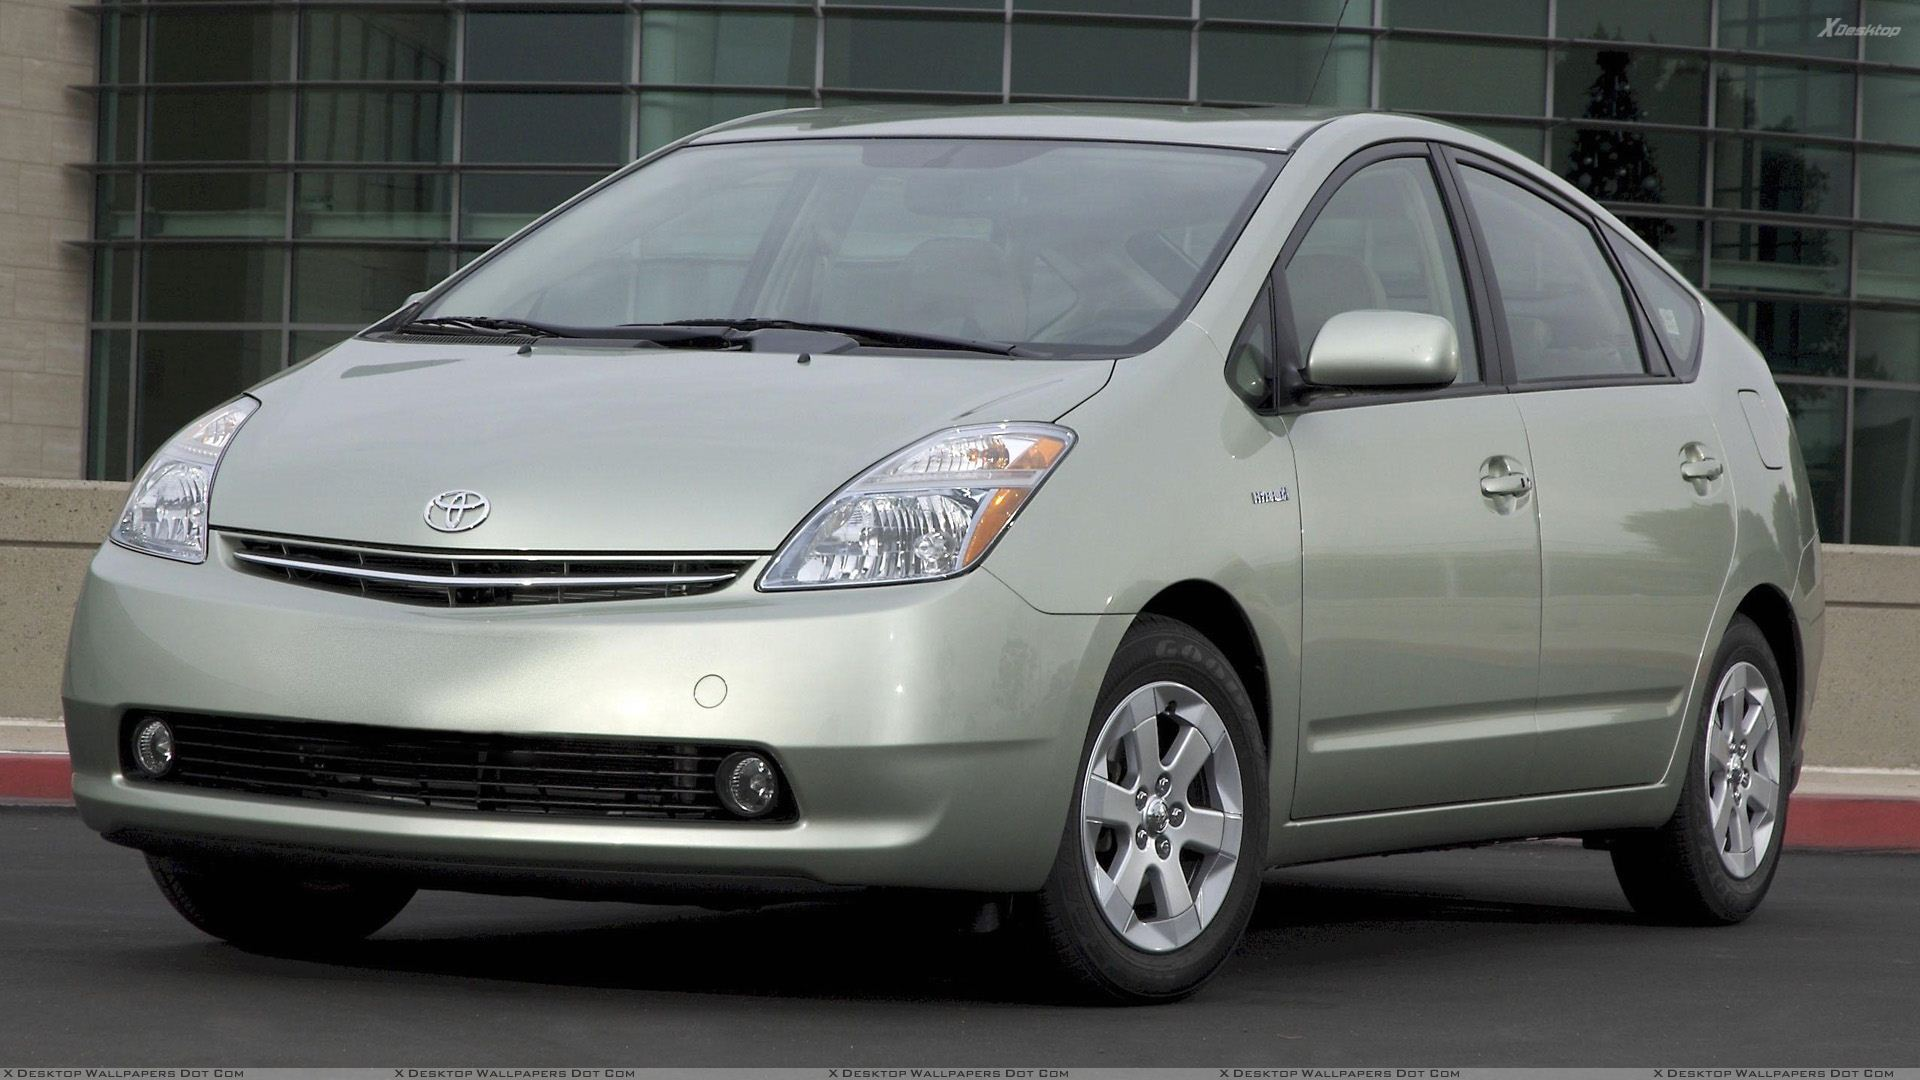 toyota prius wallpapers photos images in hd. Black Bedroom Furniture Sets. Home Design Ideas